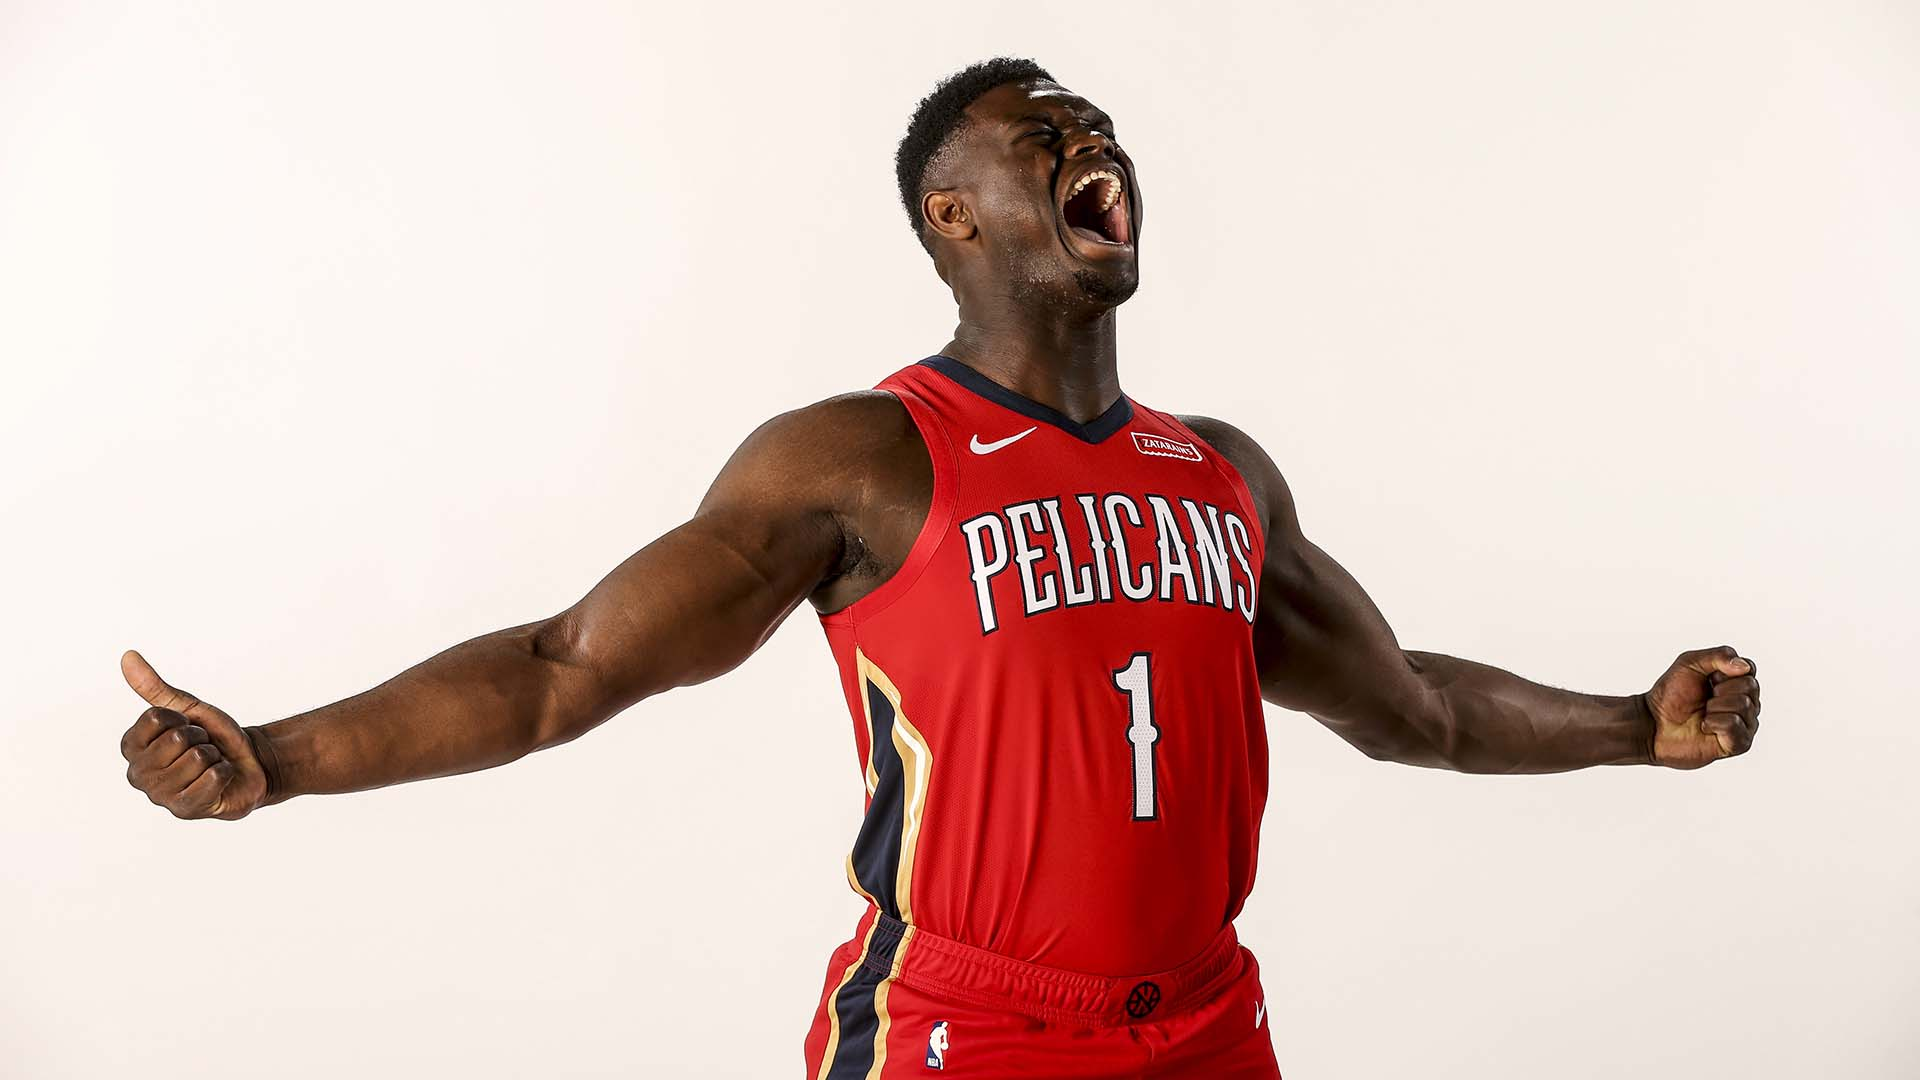 Why is NBA 2K21 Promoting Zion Williamson as the Cover Player?